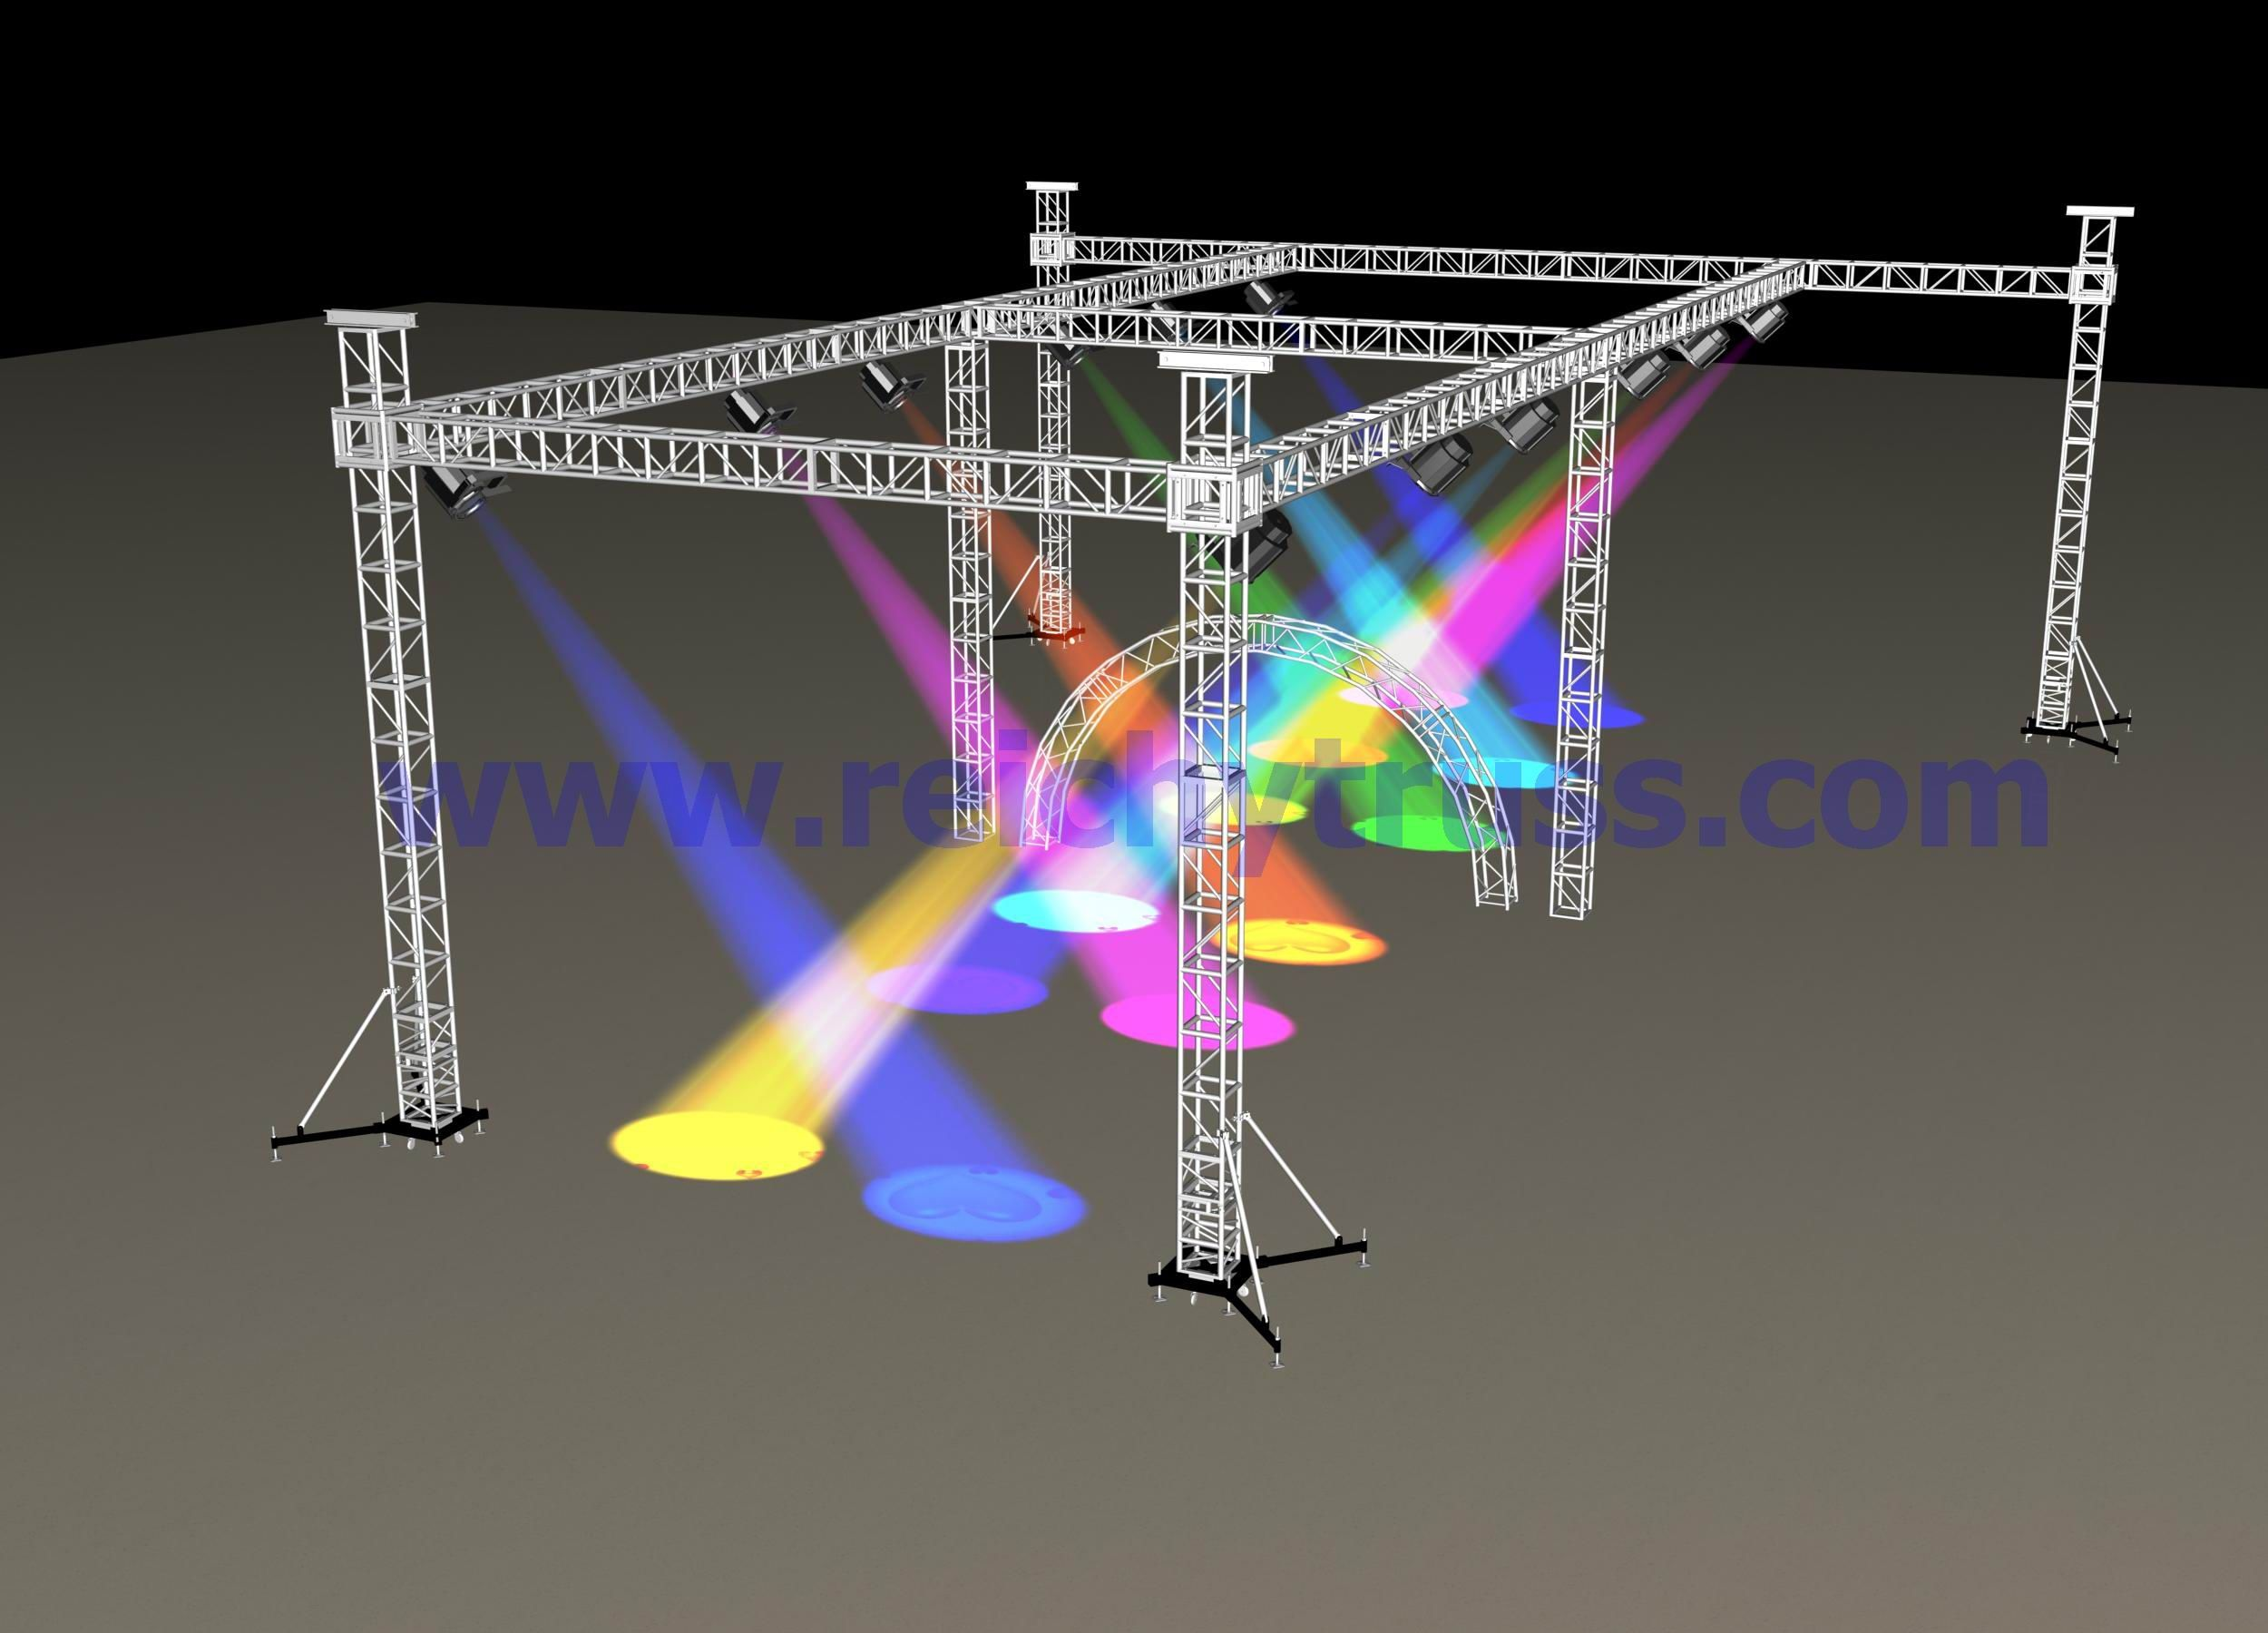 stage truss designs google search block party 8 23 in 2019 decoraci n hogar escenograf a. Black Bedroom Furniture Sets. Home Design Ideas